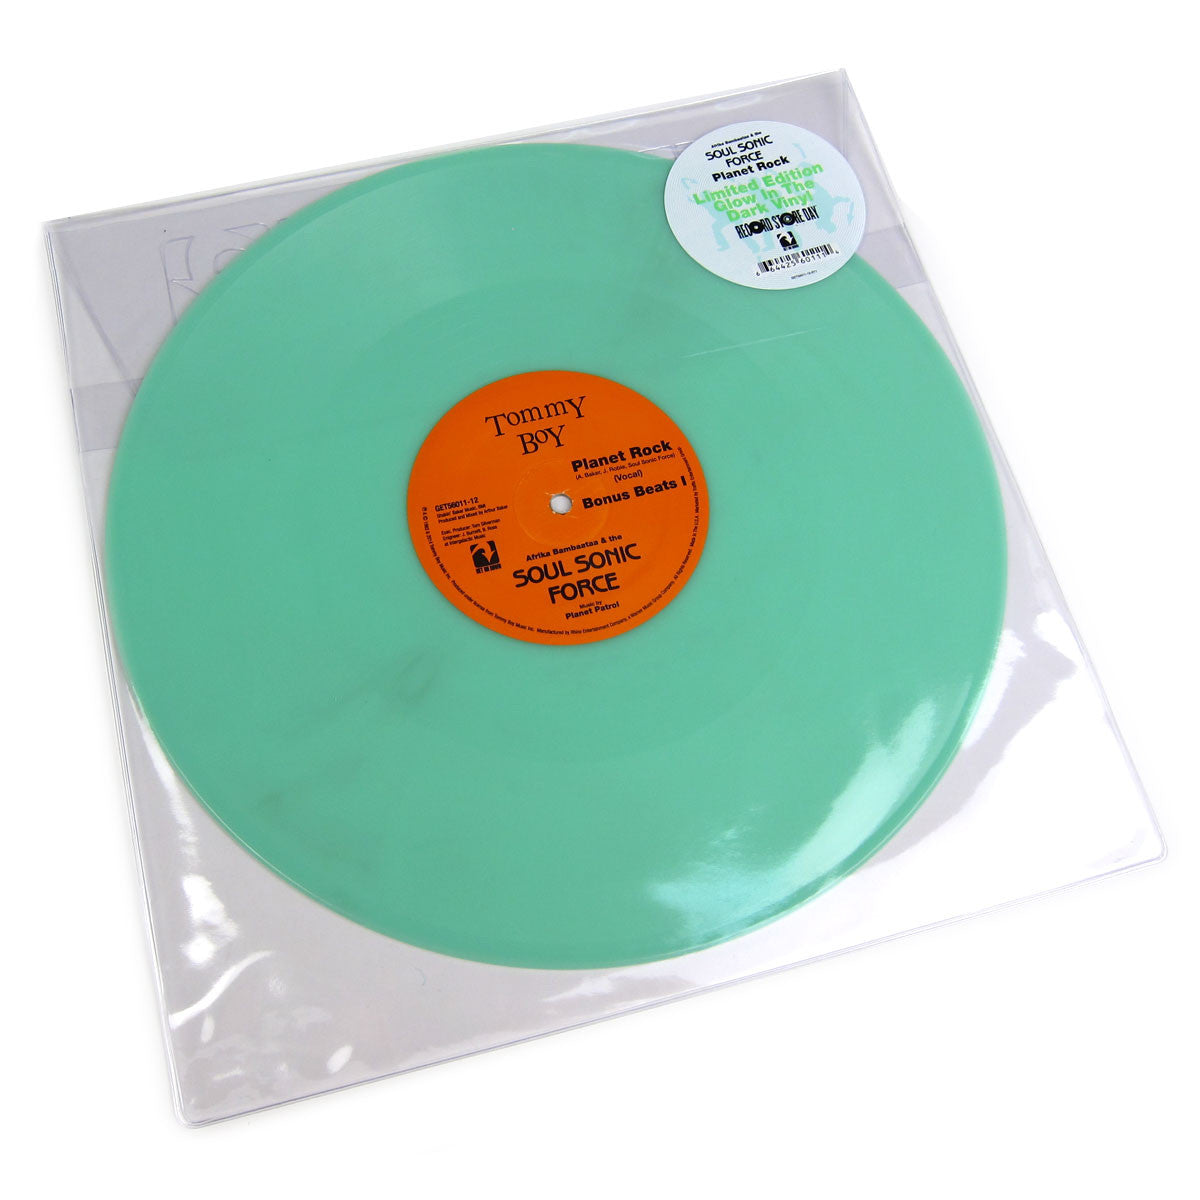 "Afrika Bambaataa & The Soul Sonic Force : Planet Rock (Glow In The Dark Vinyl) Vinyl 12"" (Record Store Day)"